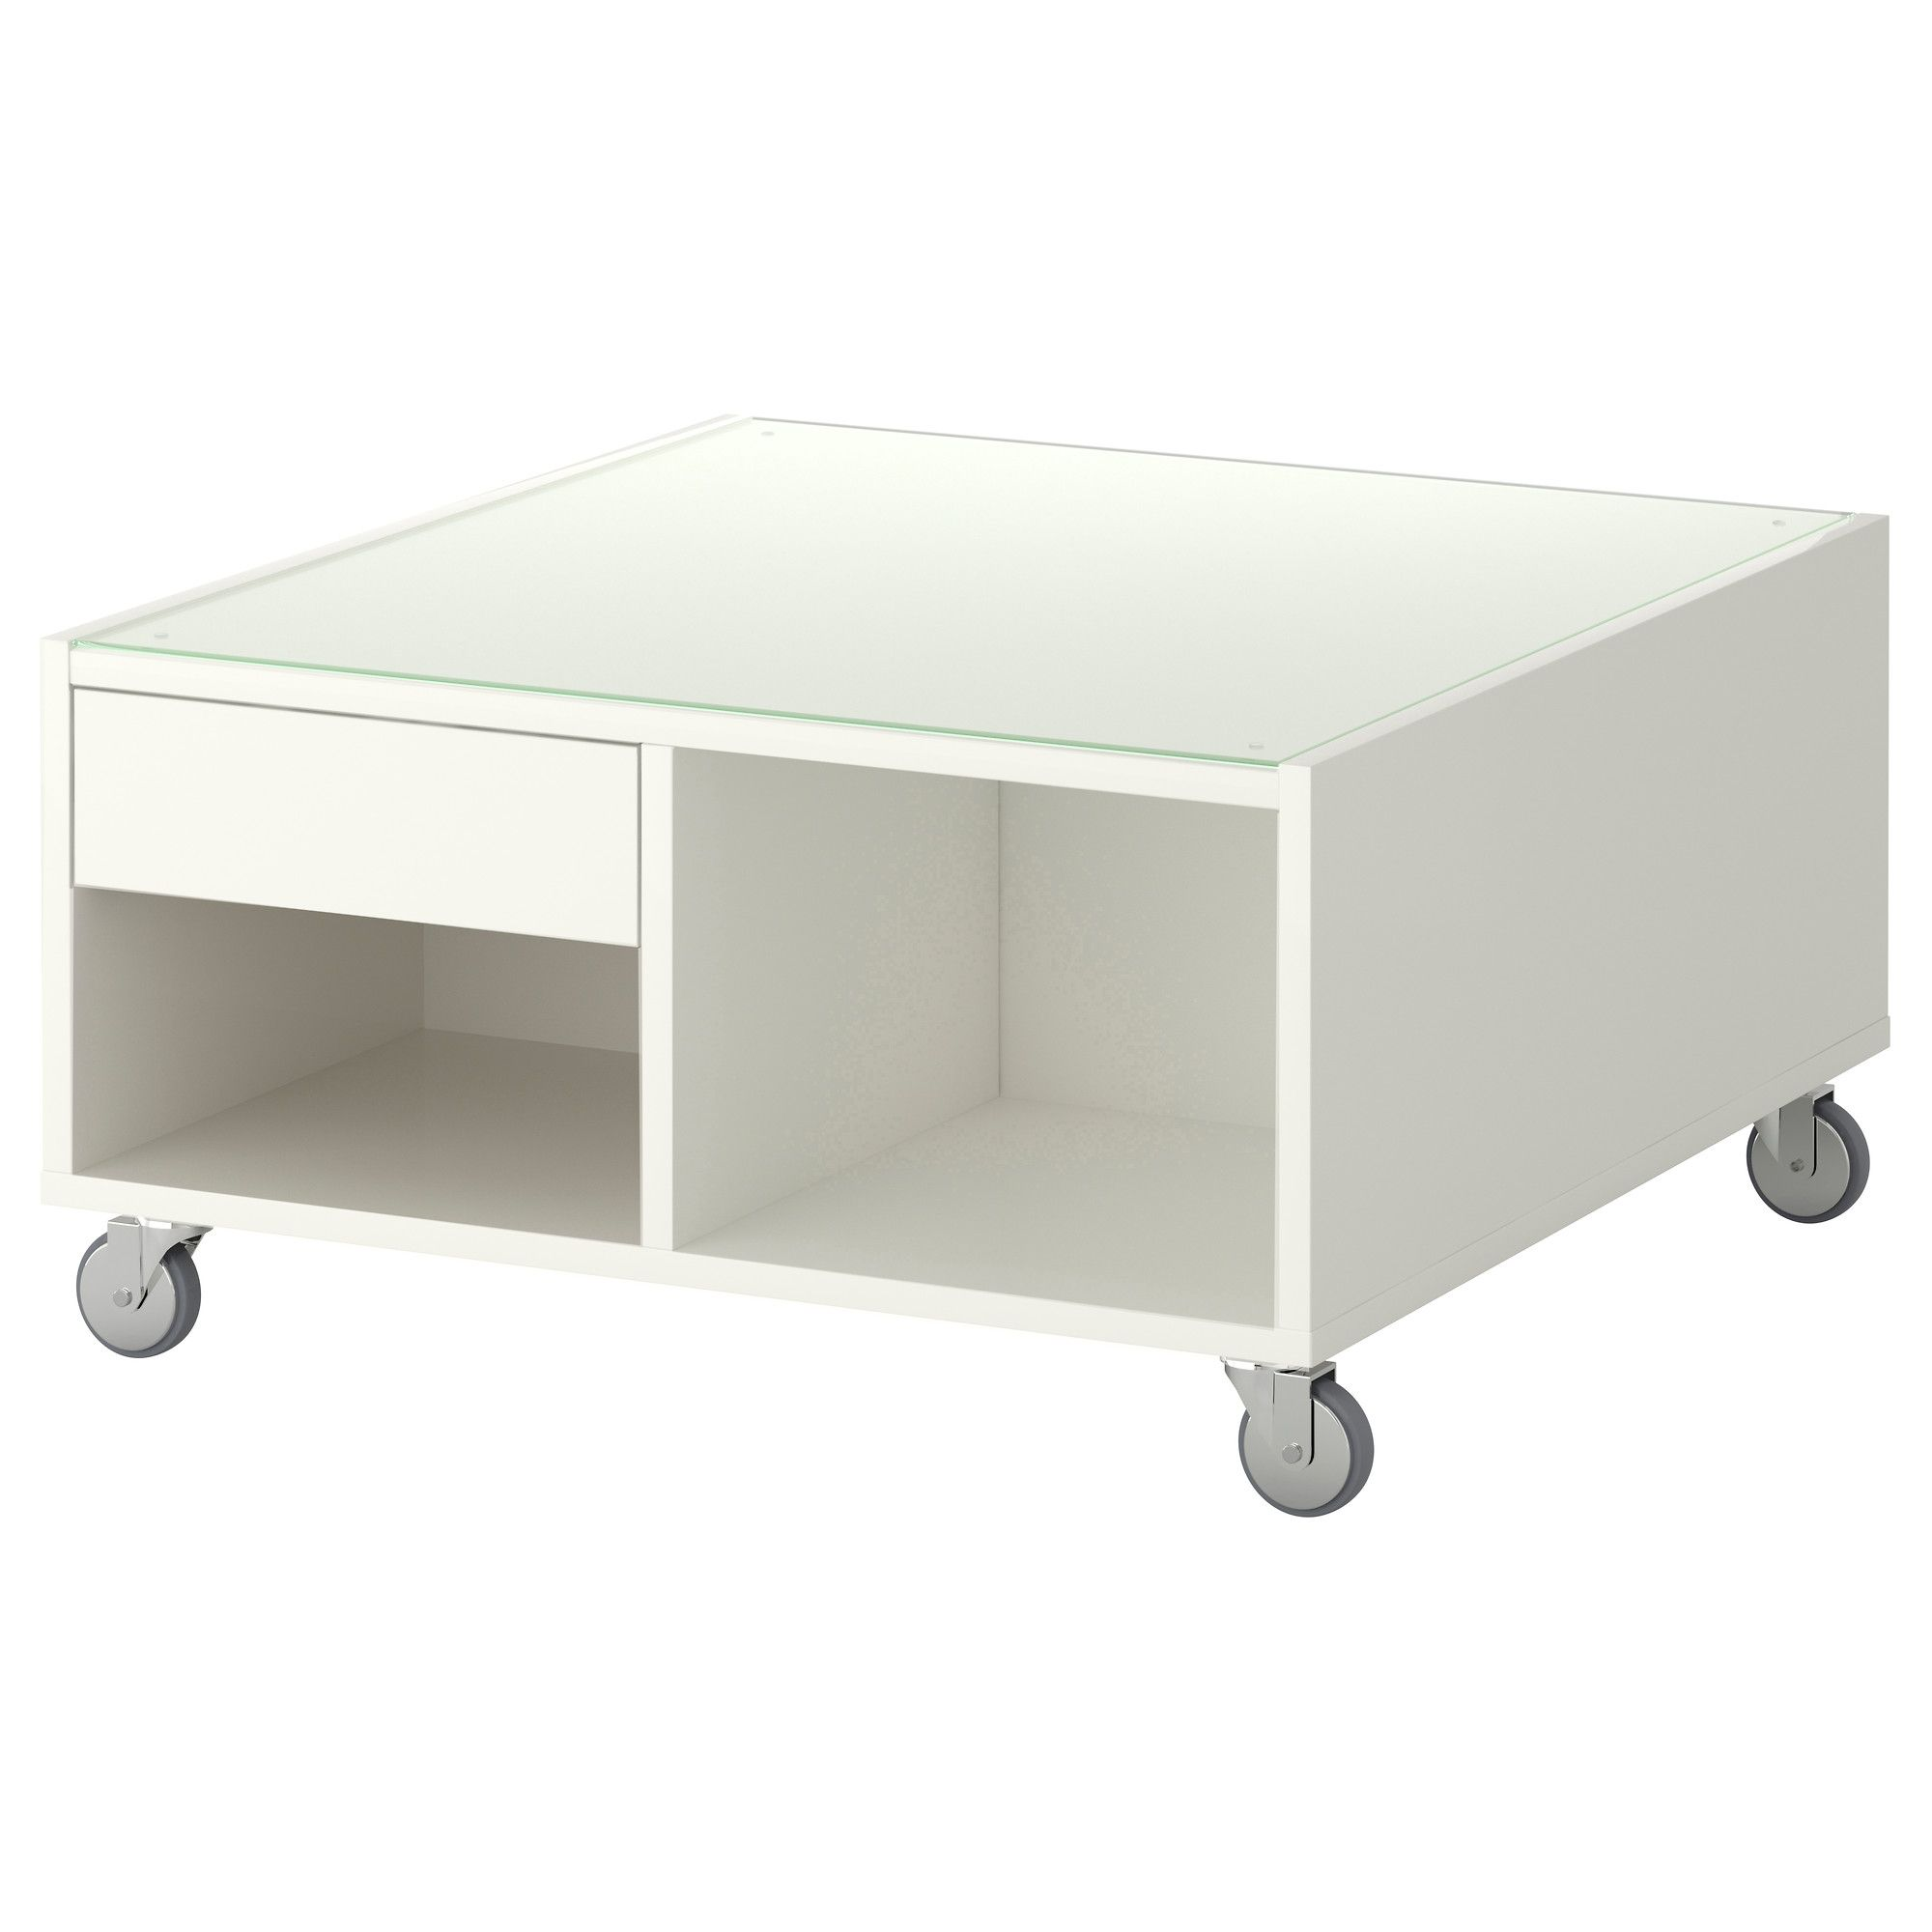 Ikea Couchtisch Weiß 169 00 Ikea Boksel Coffee Table White Veneered Surface Gives